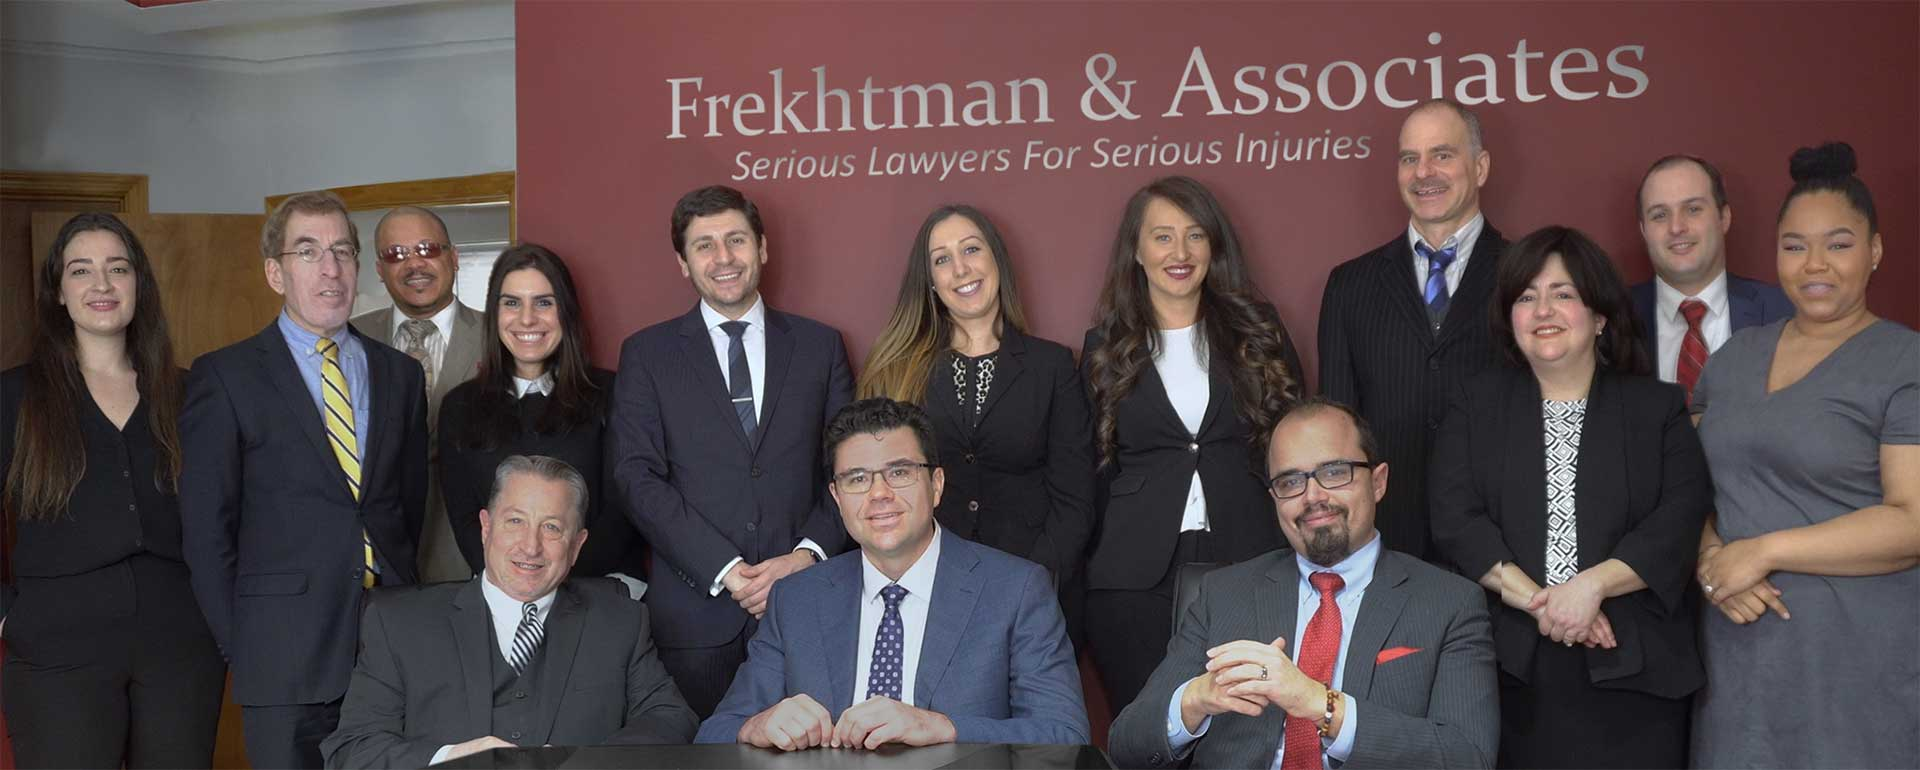 frekhtman-new-york-injury